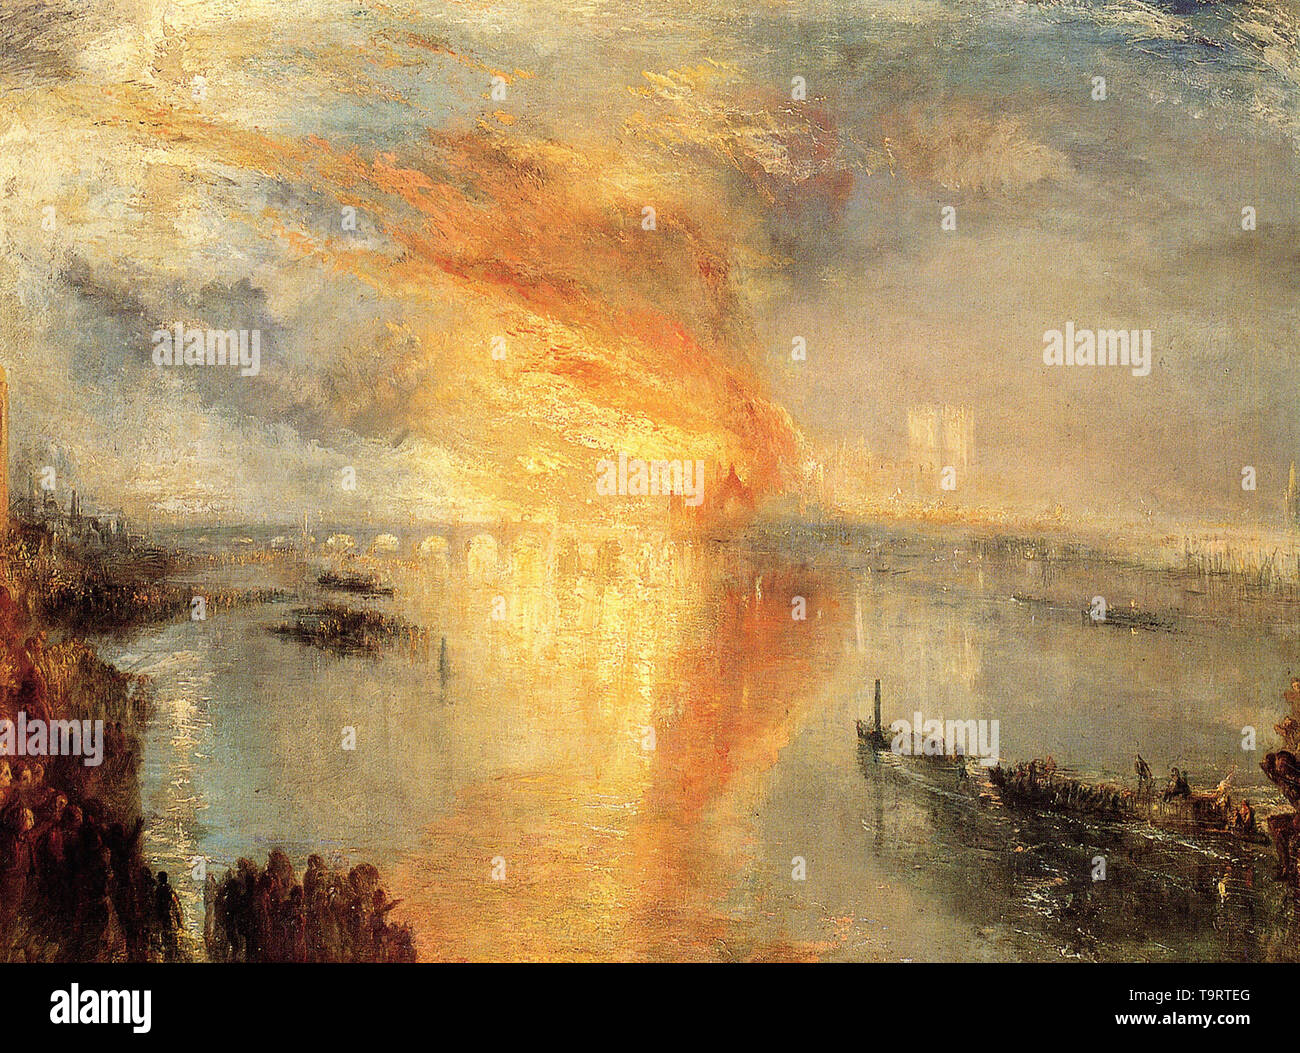 Joseph Mallord William Turner - burning houses parliament 2 1834 - Stock Image